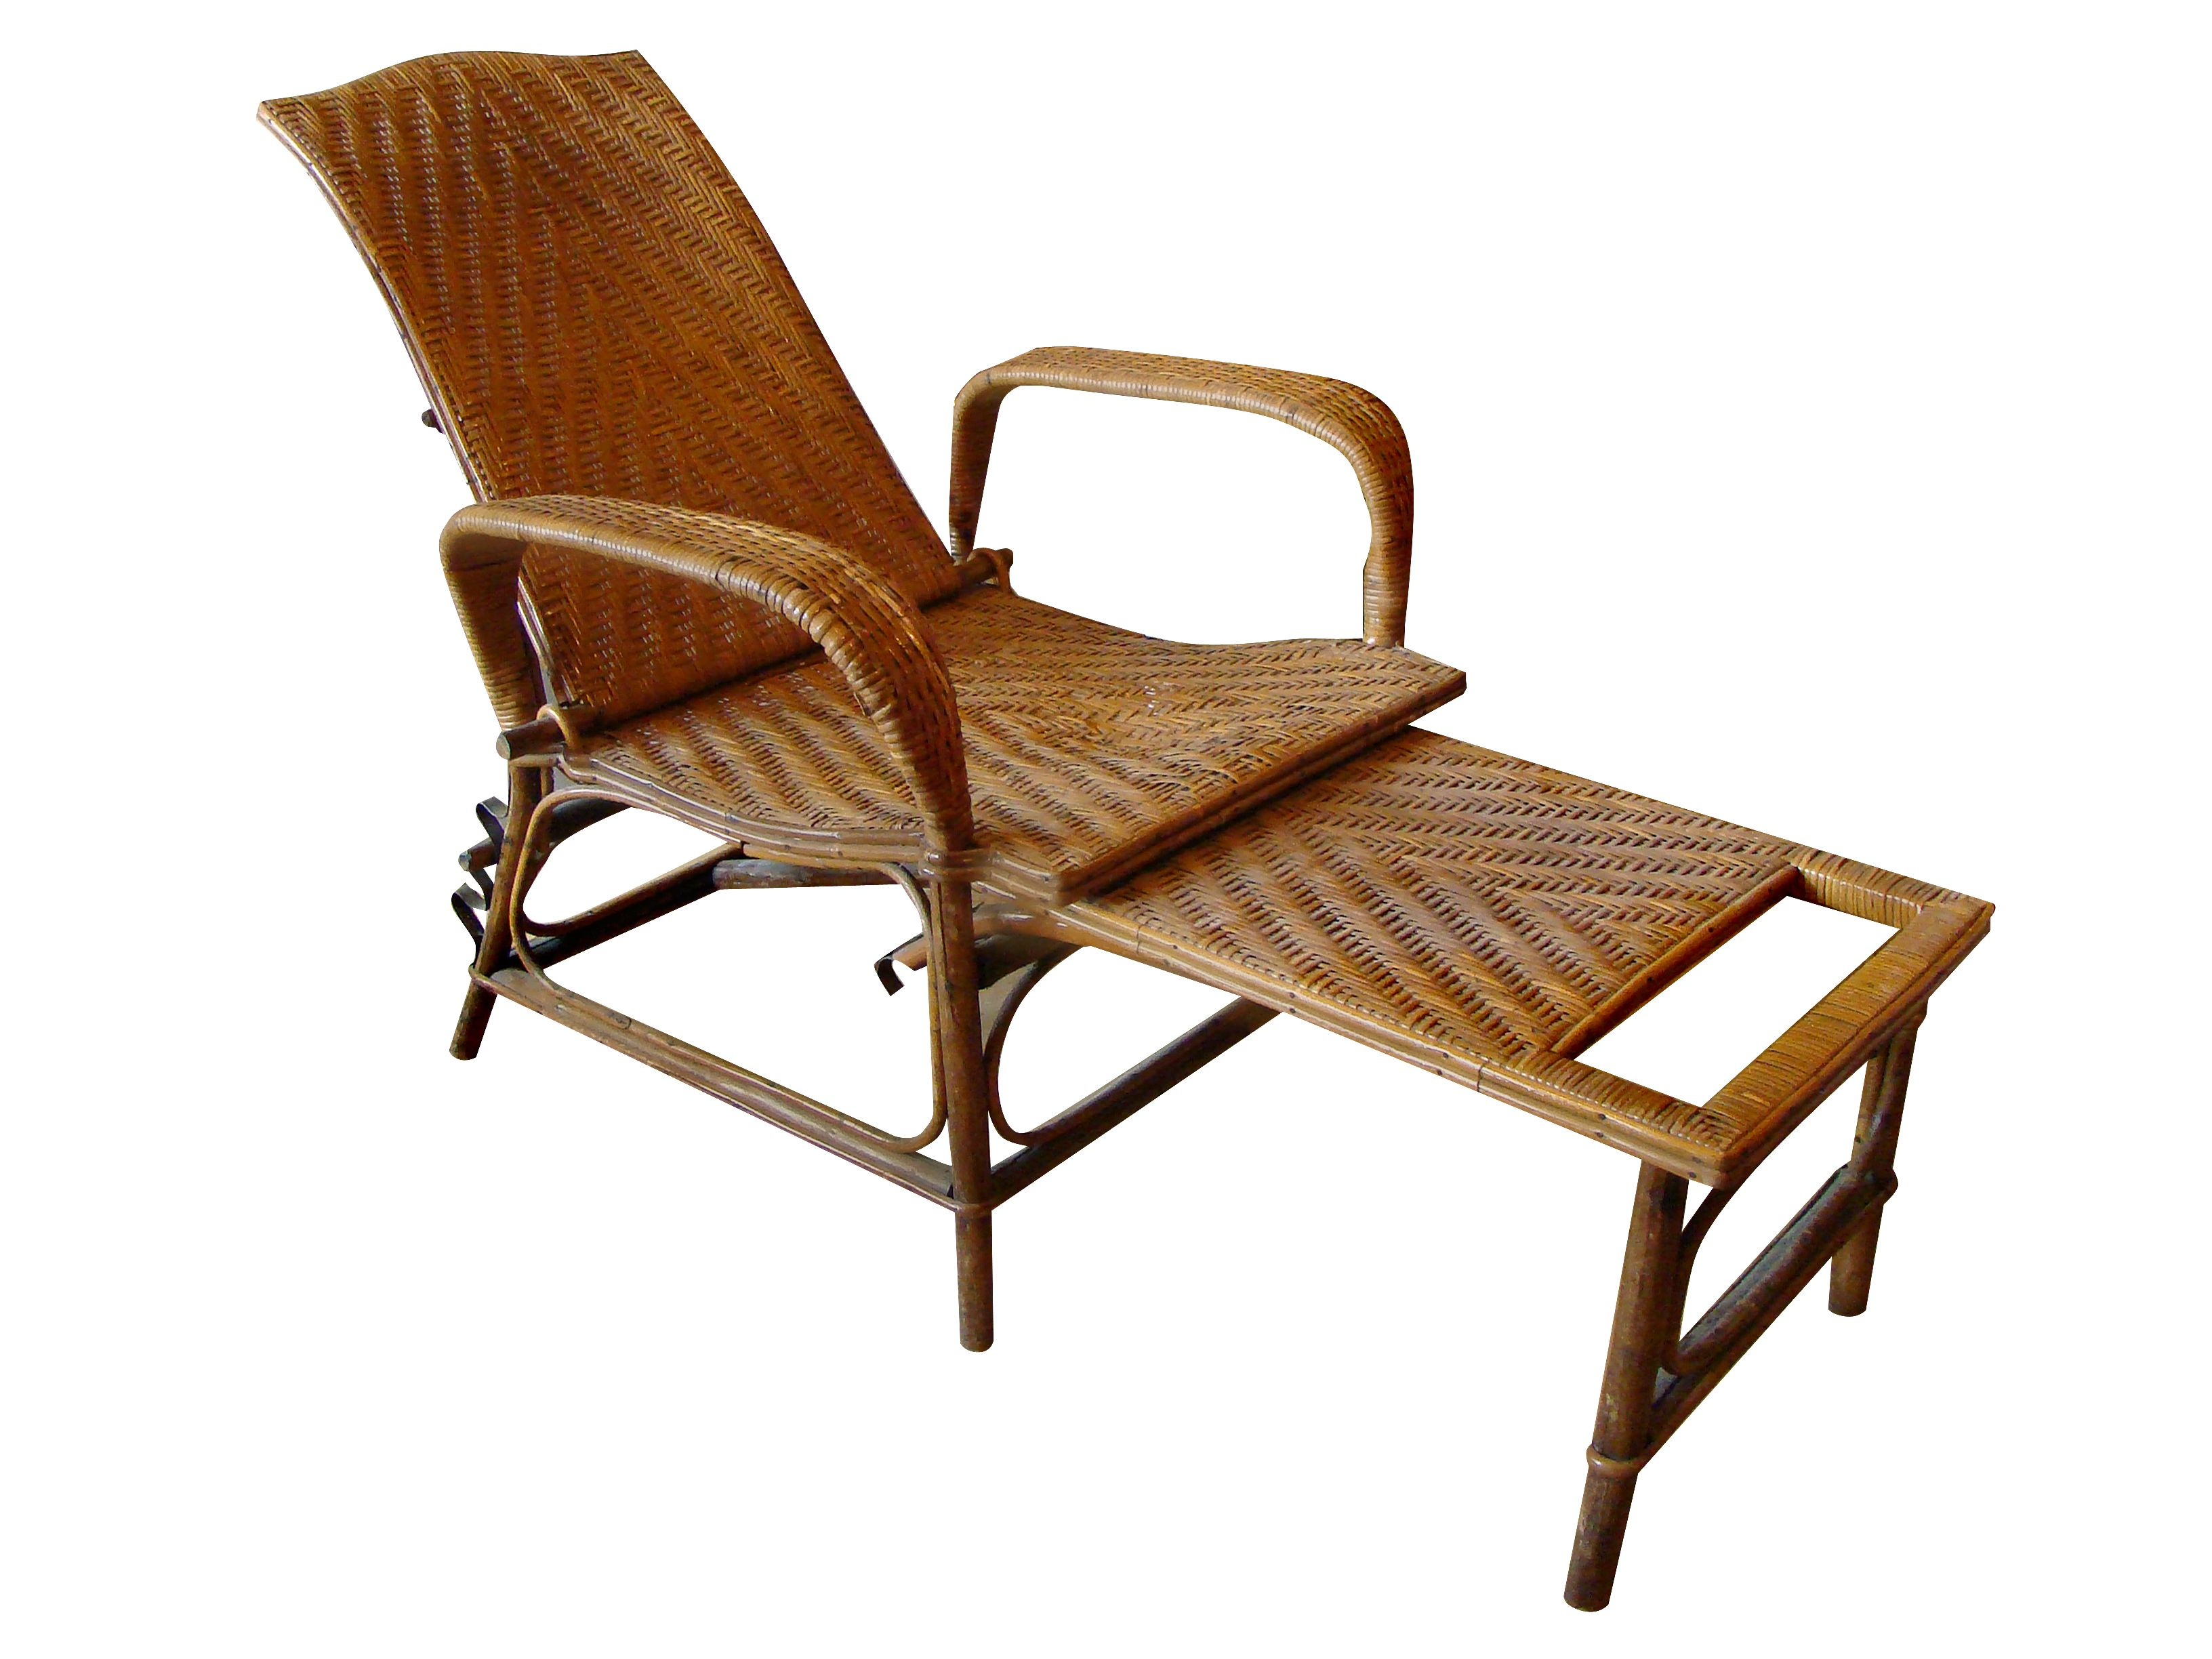 Widely Used Outdoor Adjustable Rattan Wicker Chaise Pool Chairs With Cushions Intended For Lounge Extraordinary Sofa Cotton Chair Target Chaise Wicker (View 25 of 25)